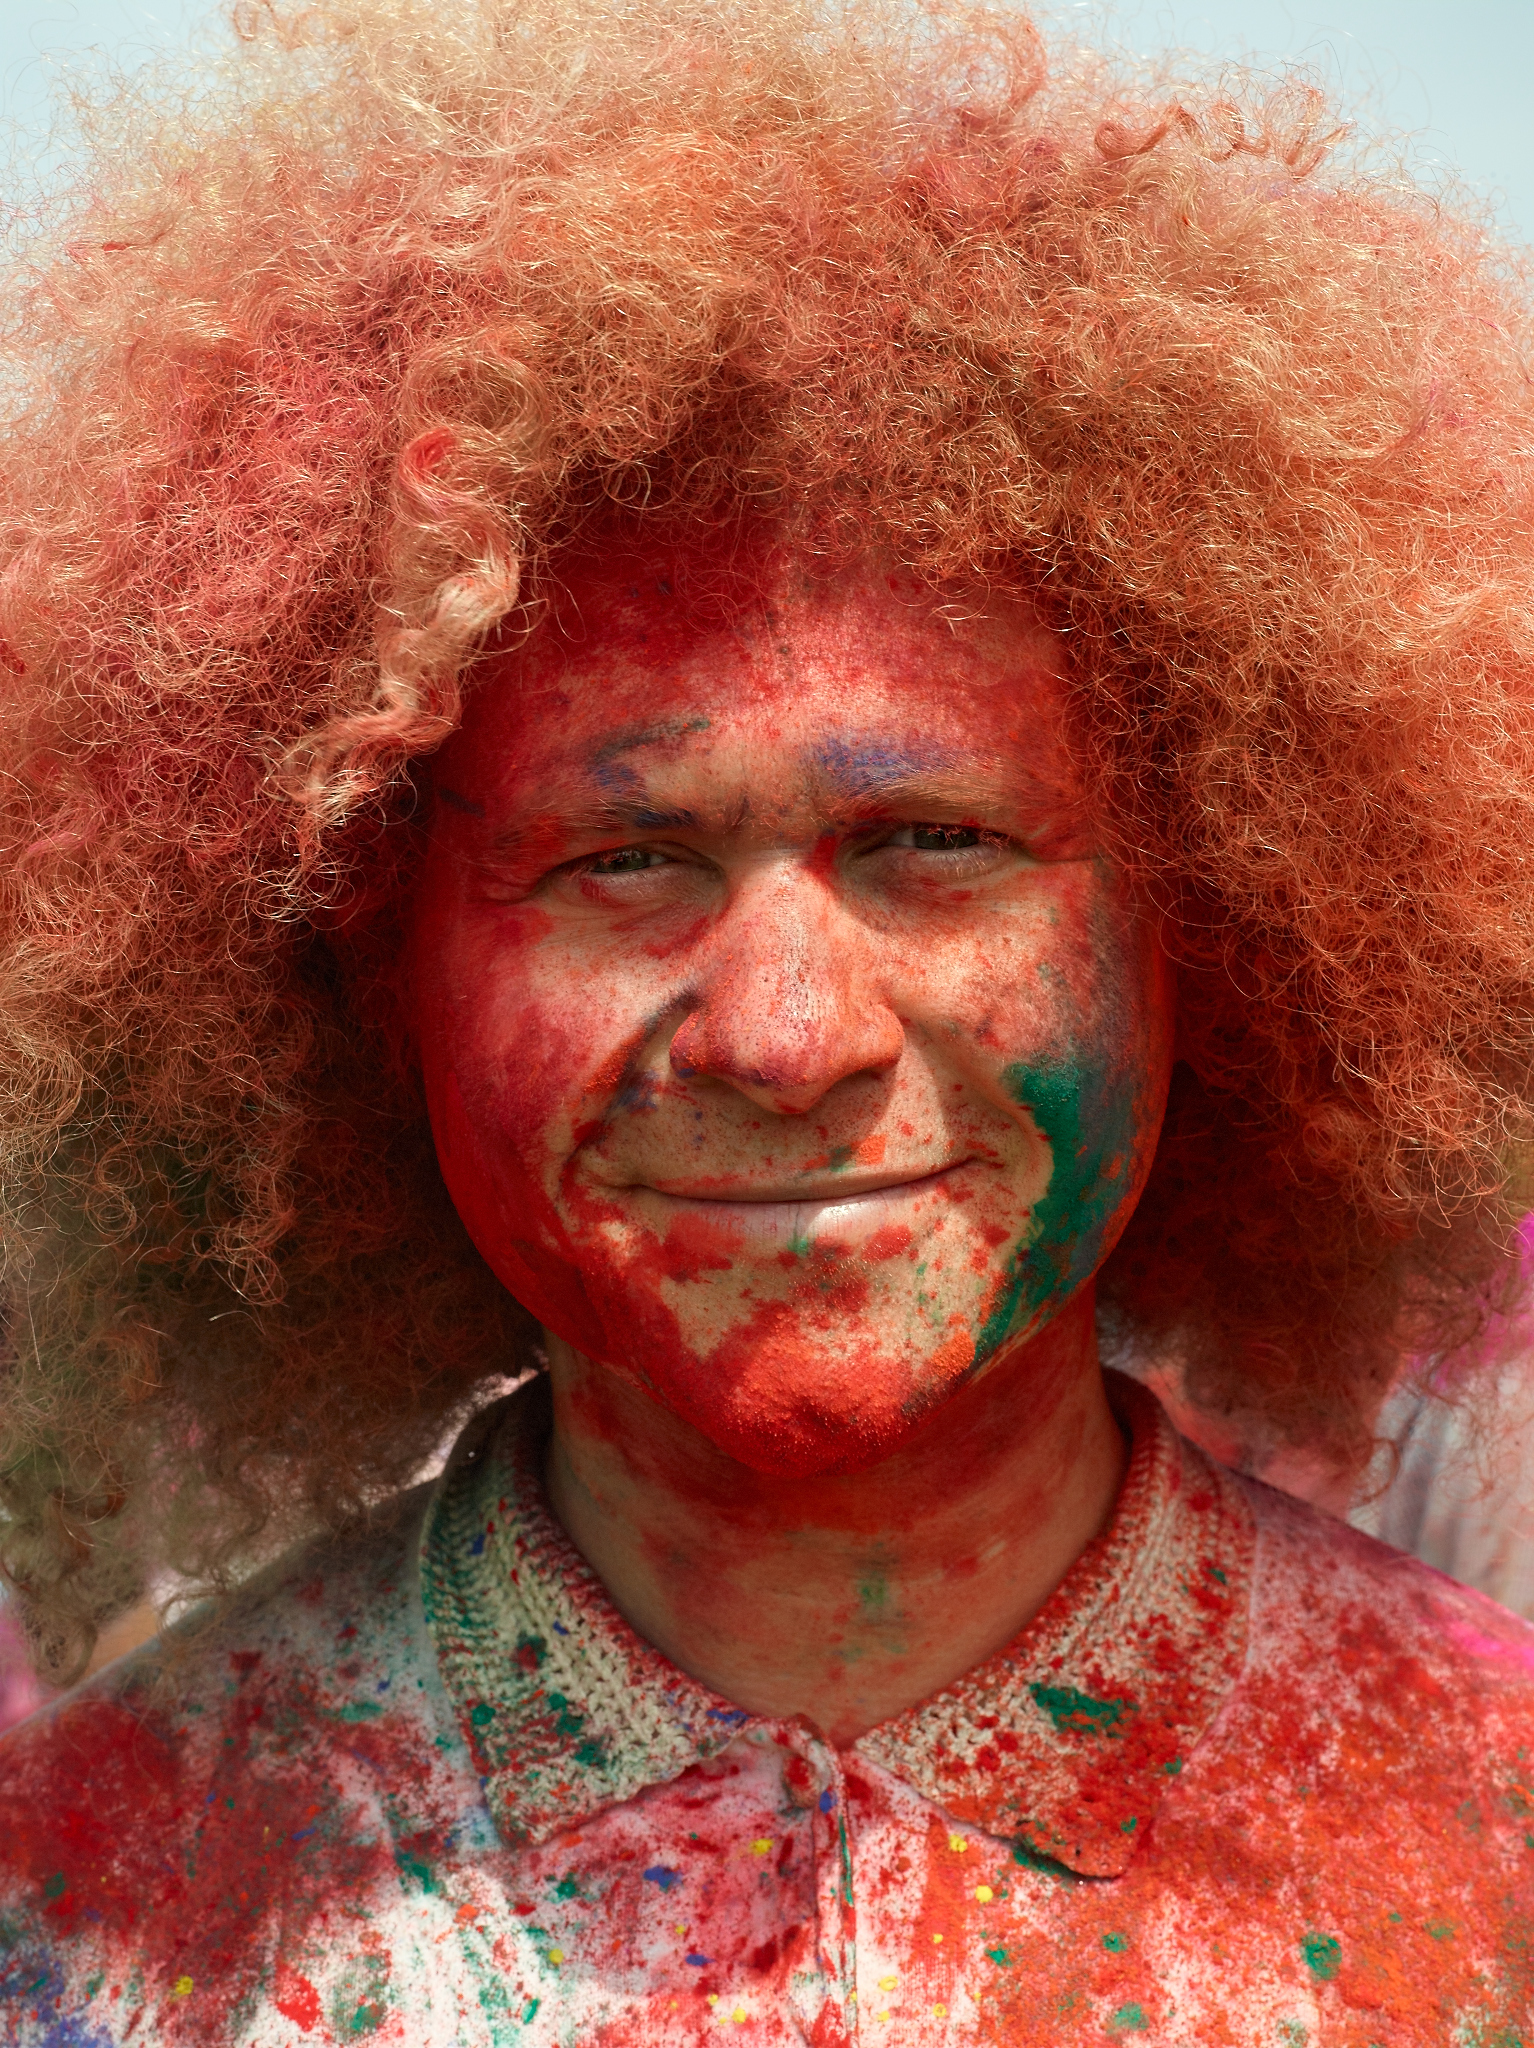 Asha Holi Festival of Colors by Peter Adams.